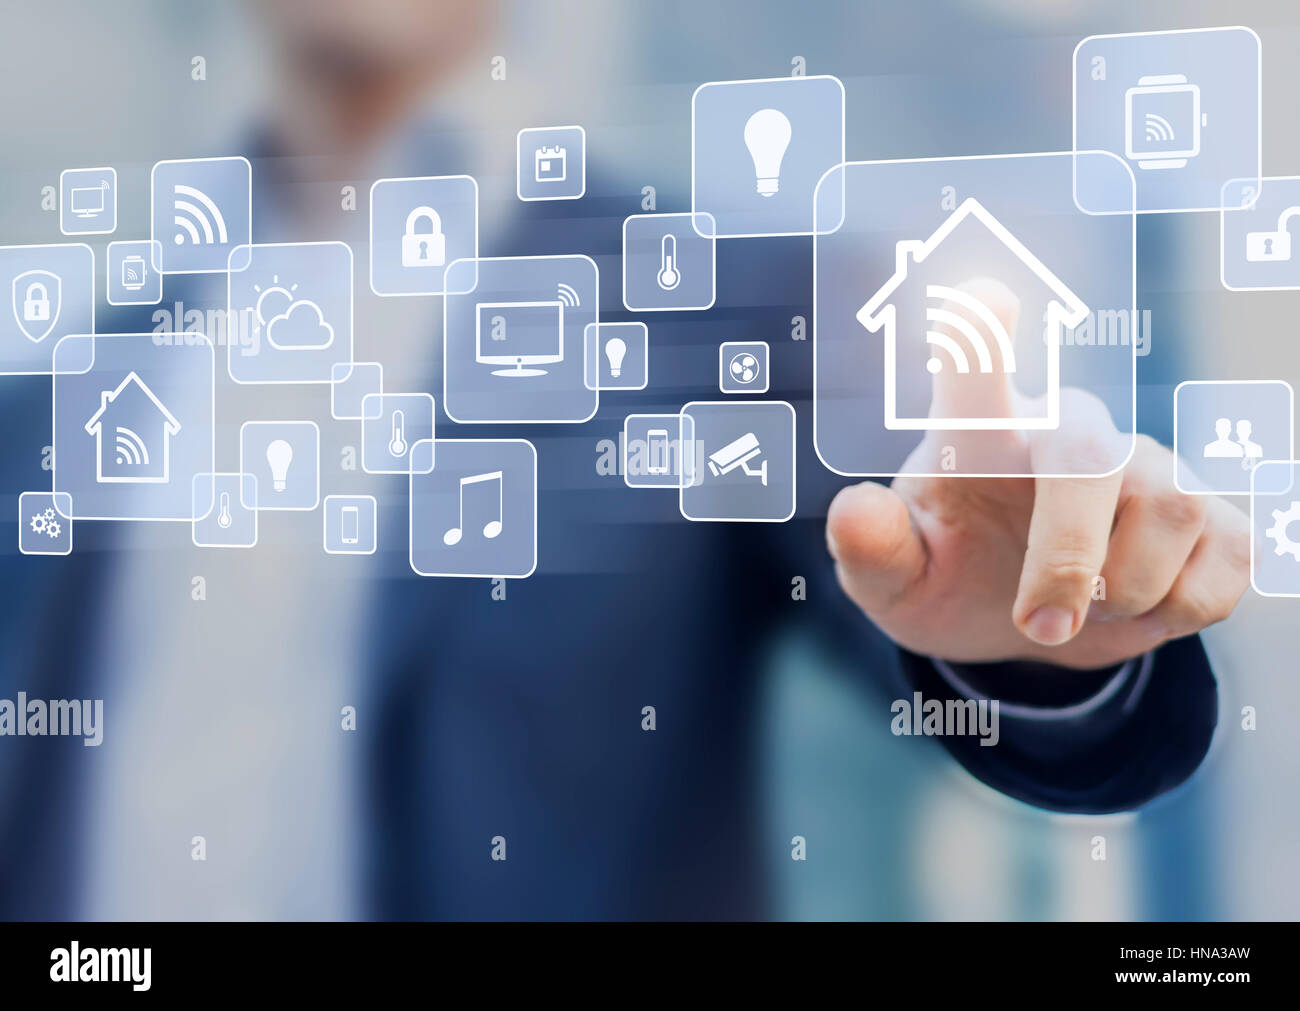 Internet of things (IOT) concept related to smart home automation and connected objects with a person touching a - Stock Image